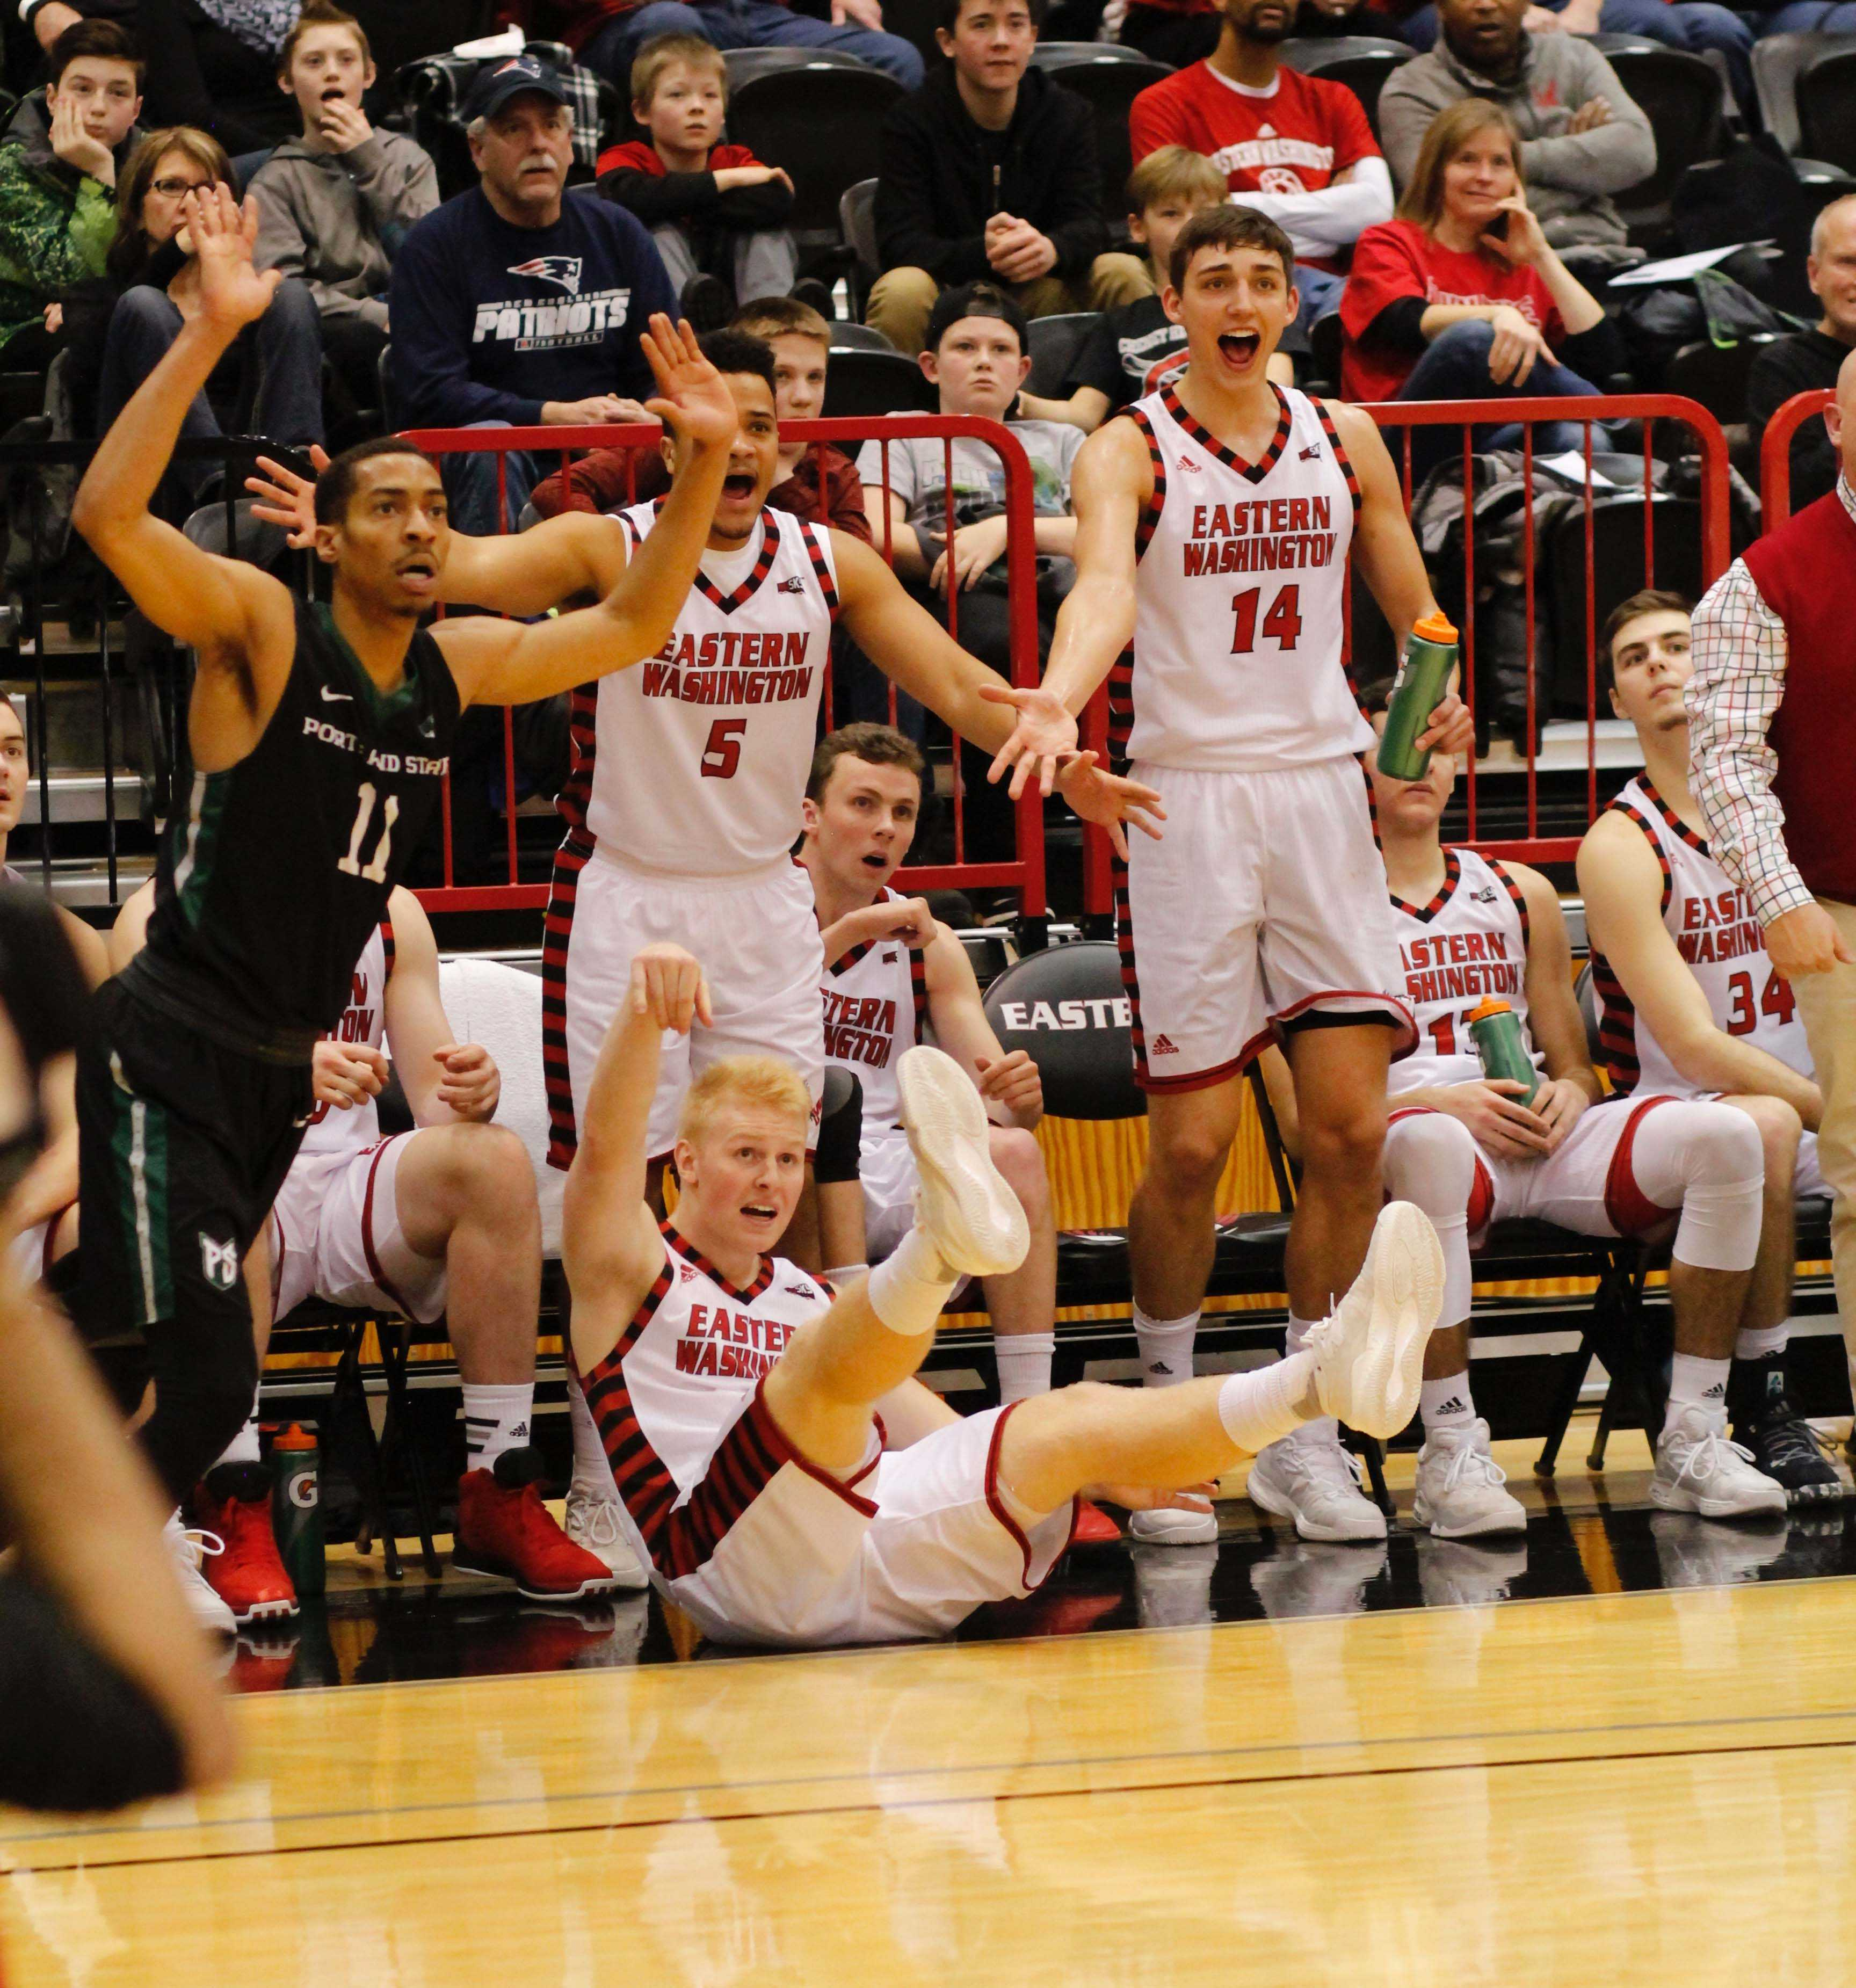 Sophomore+guard+Ty+Gibson+draws+a+foul+on+a+three+point+attempt+in+front+of+the+EWU+bench+against+Portland+State%2C+Feb.+4%2C+2017%2C+at+Reese+Court.